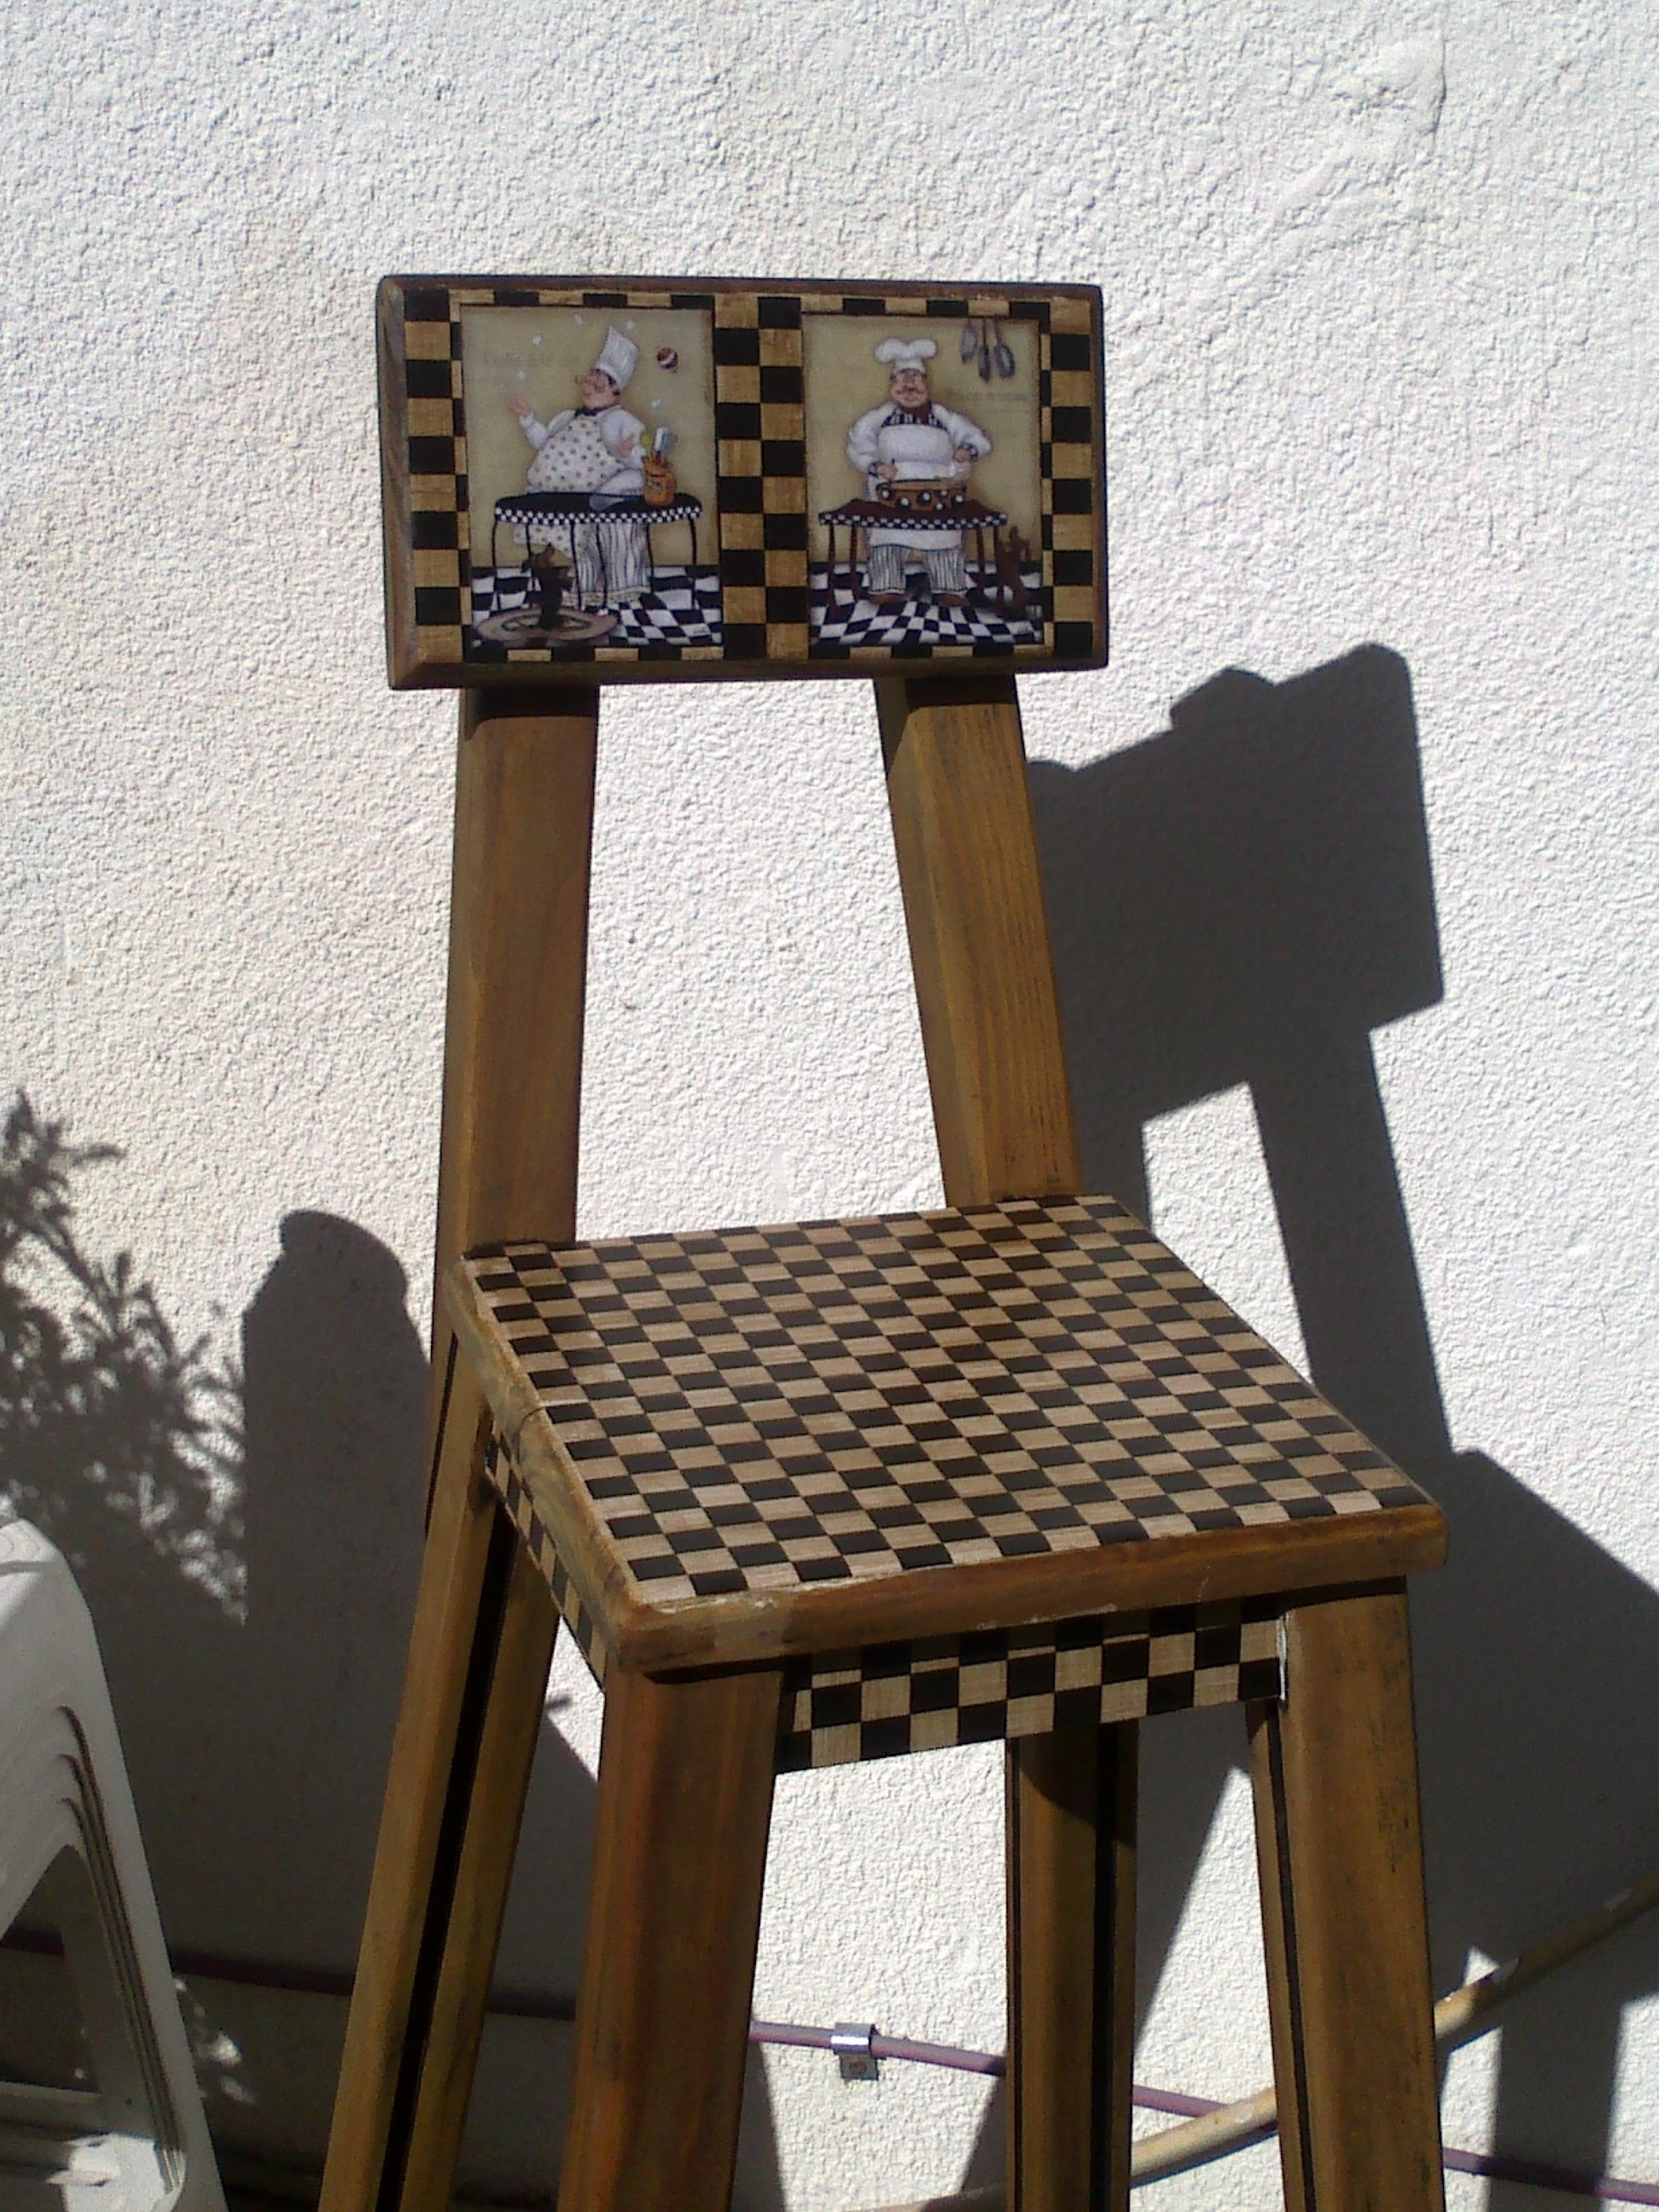 Recicled wooden chair